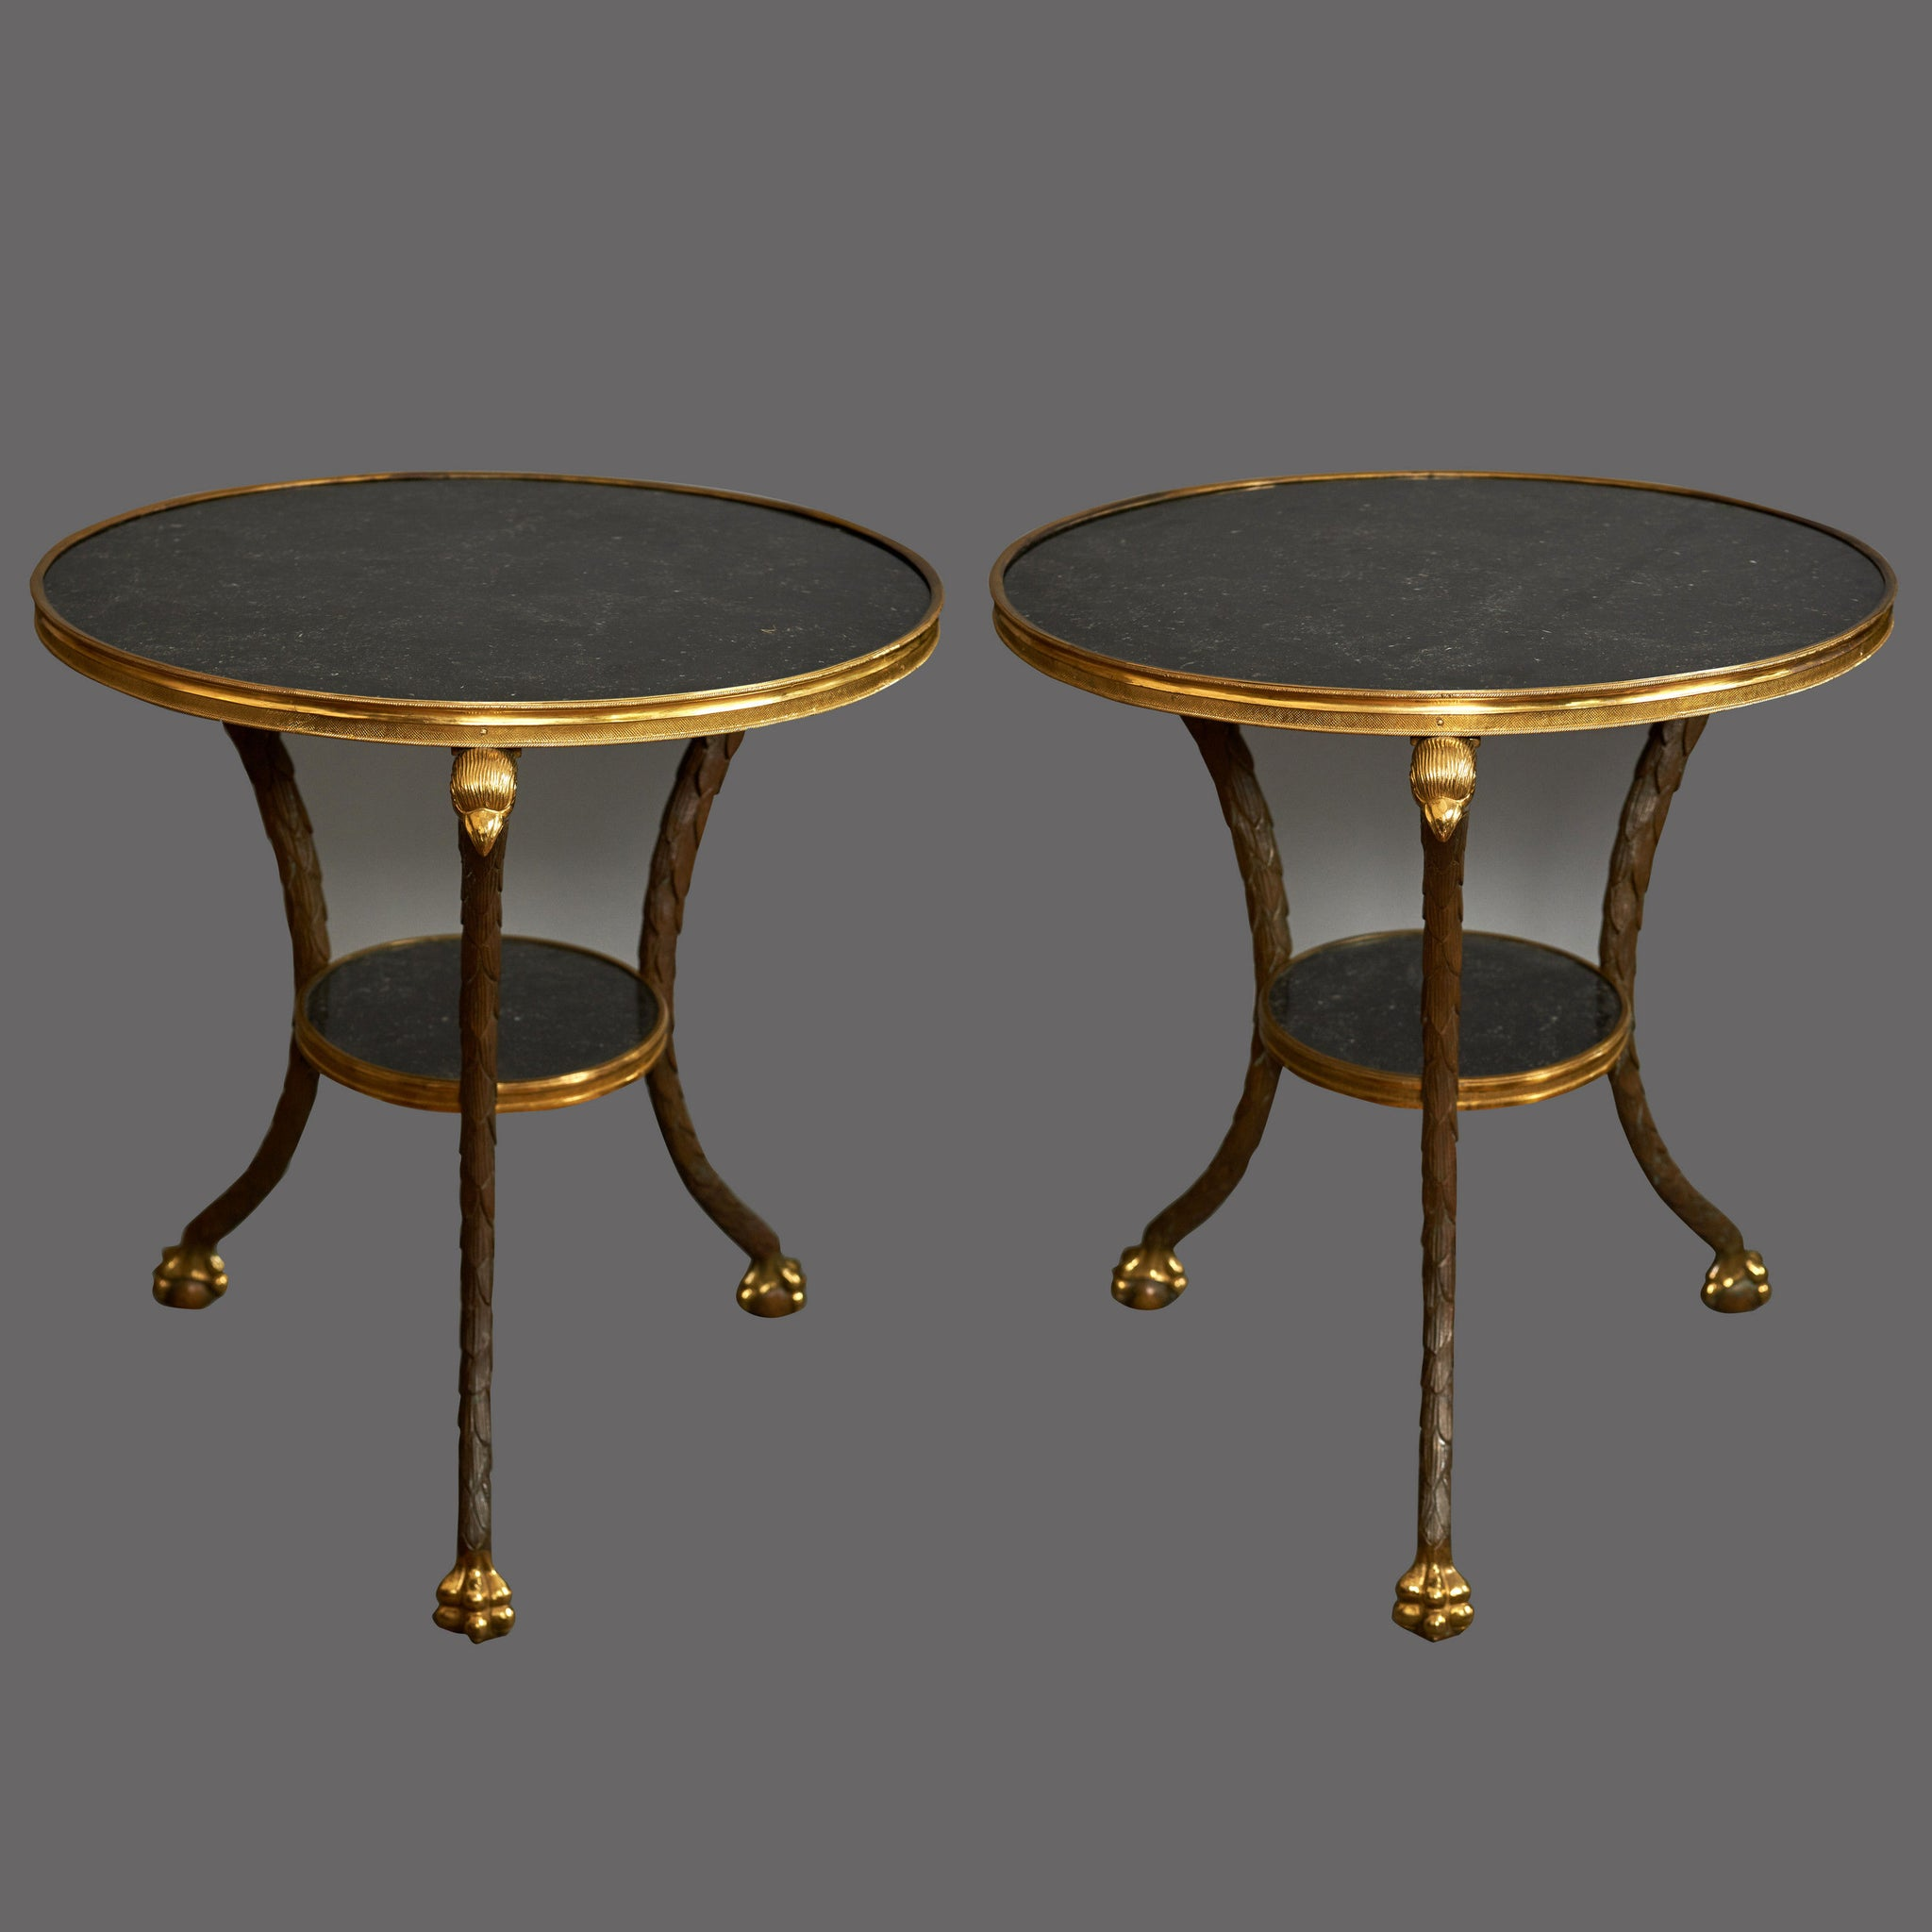 Pair of Marble & Bronze Circular End Tables